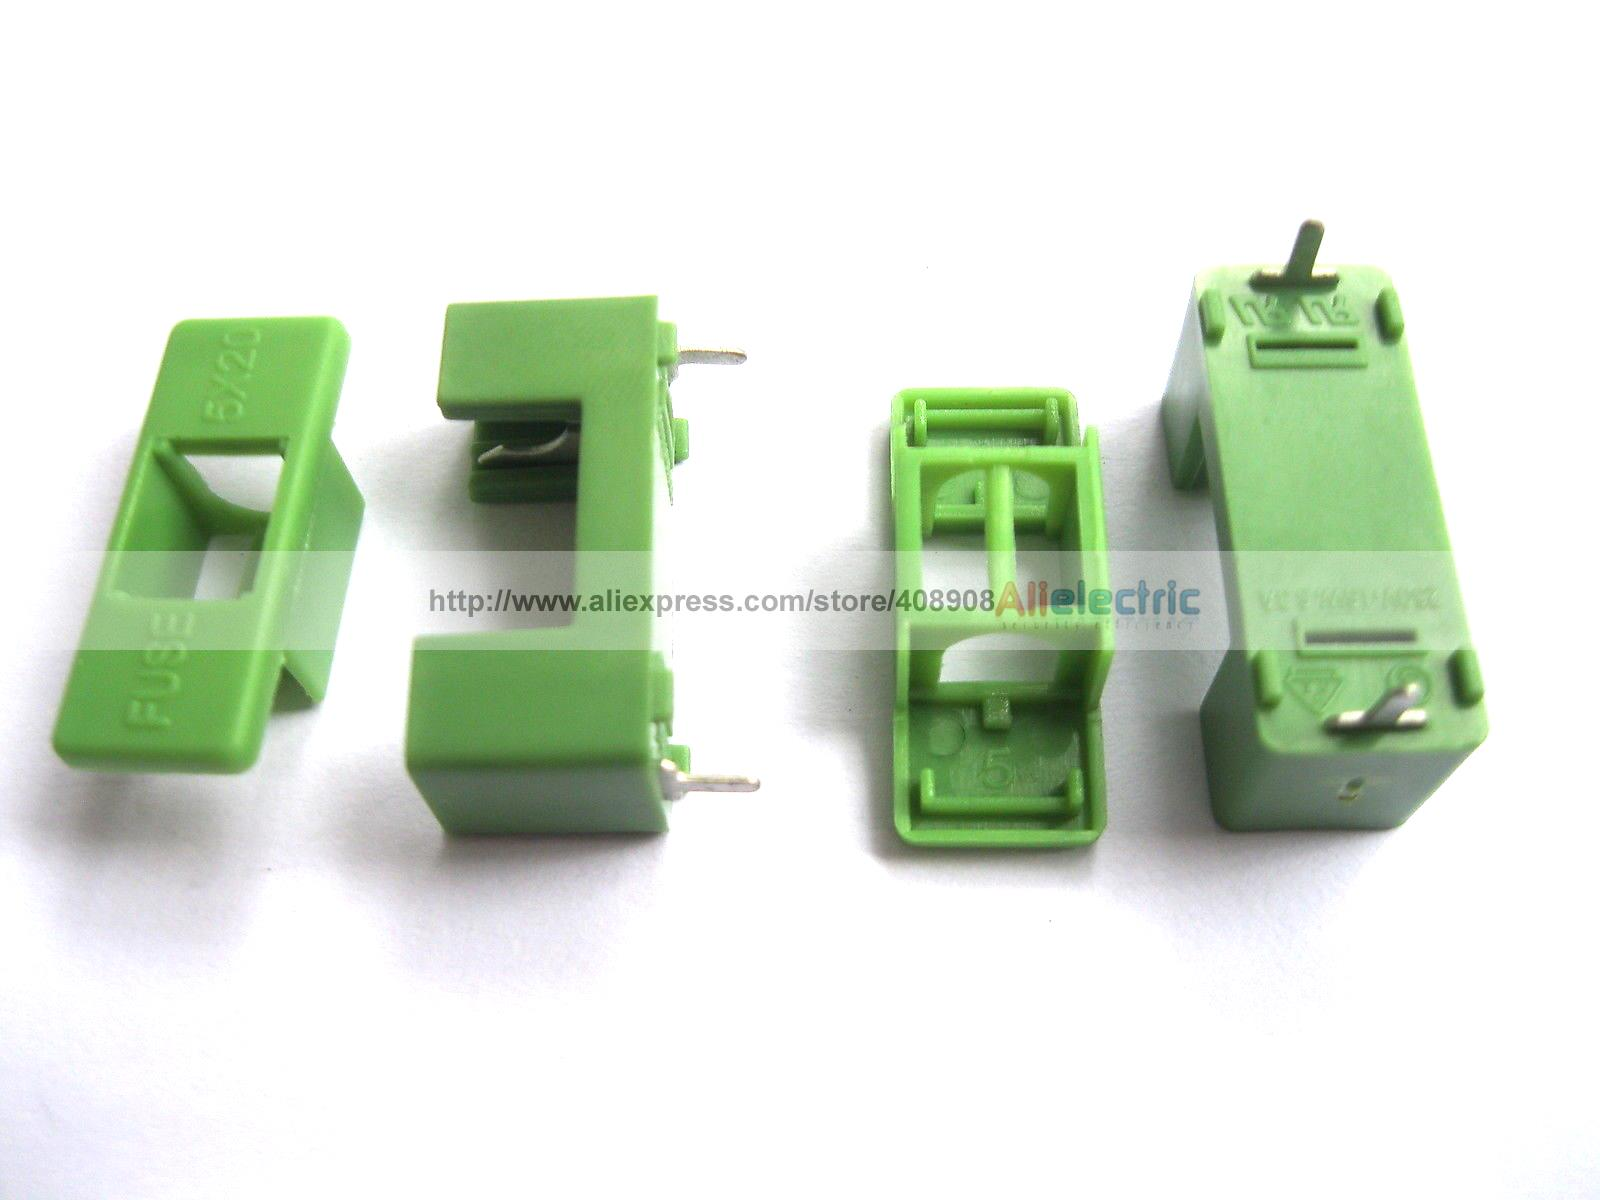 100 Pcs PTF 7 DIP Fuse Holder 6 3A 250V Used for 5x20 Green Color краска для волос 5 36 морозный мокко perfect mousse